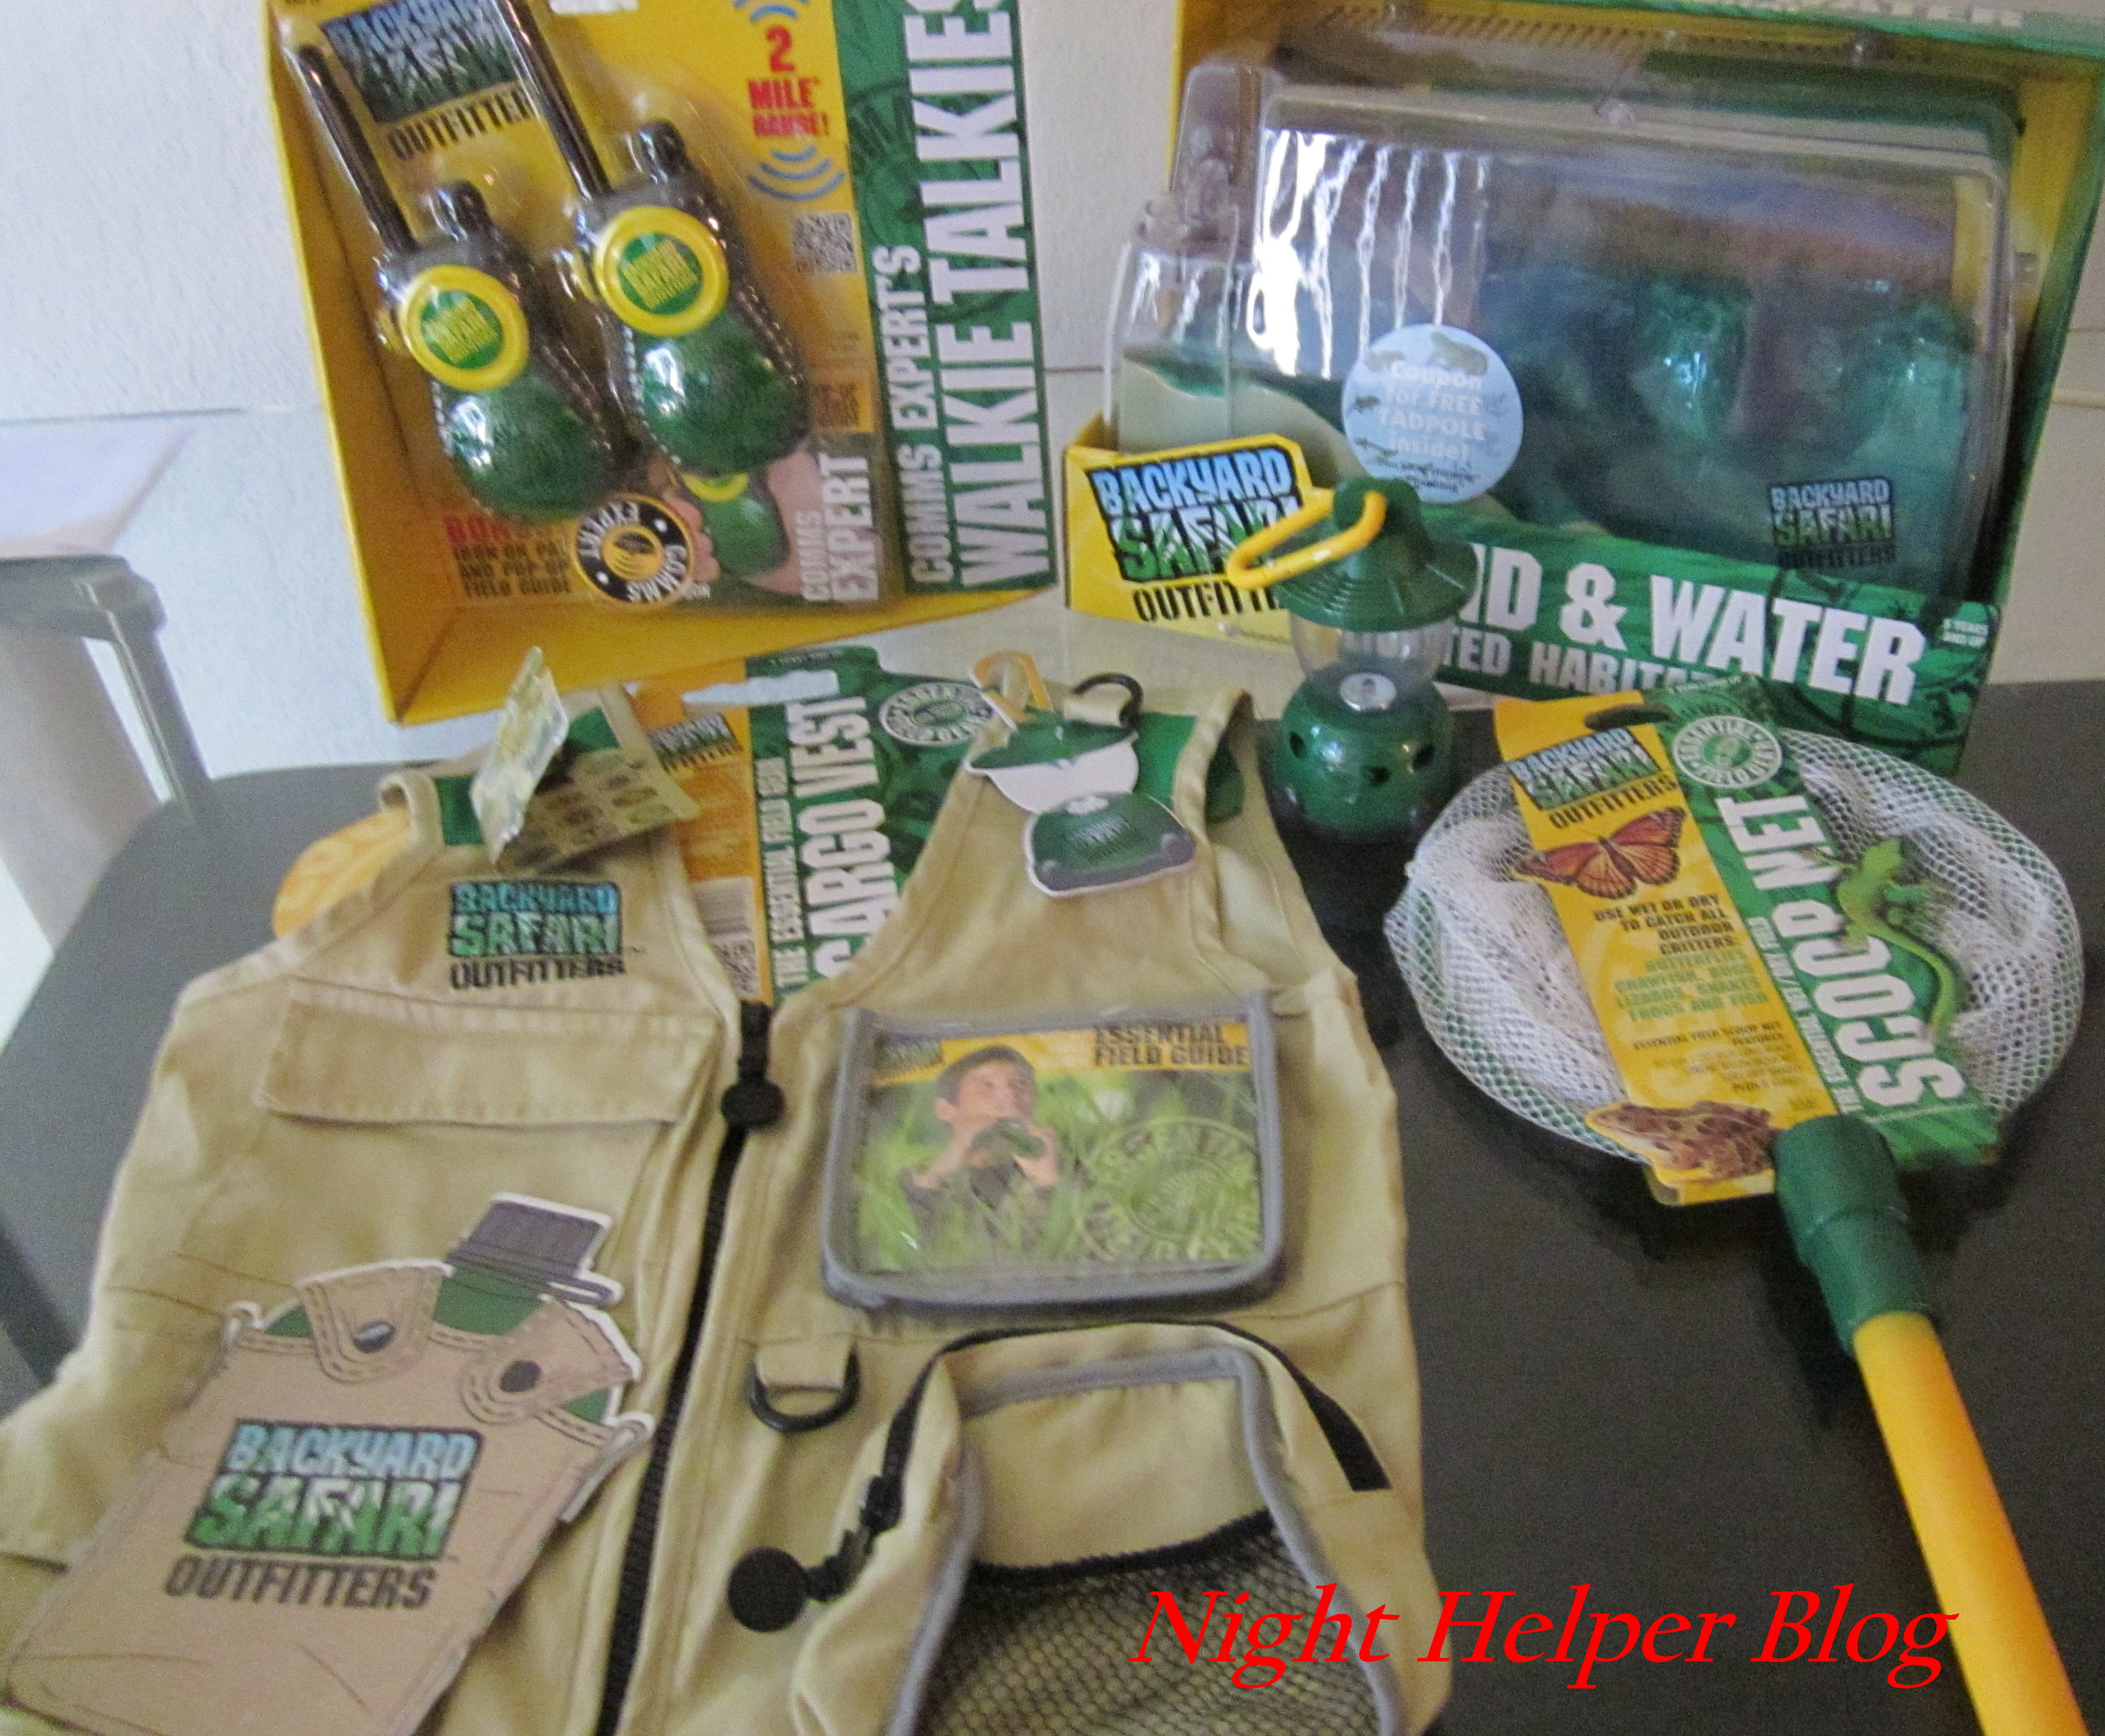 Its A Fun Backyard Safari Outfitters Giveaway Just For